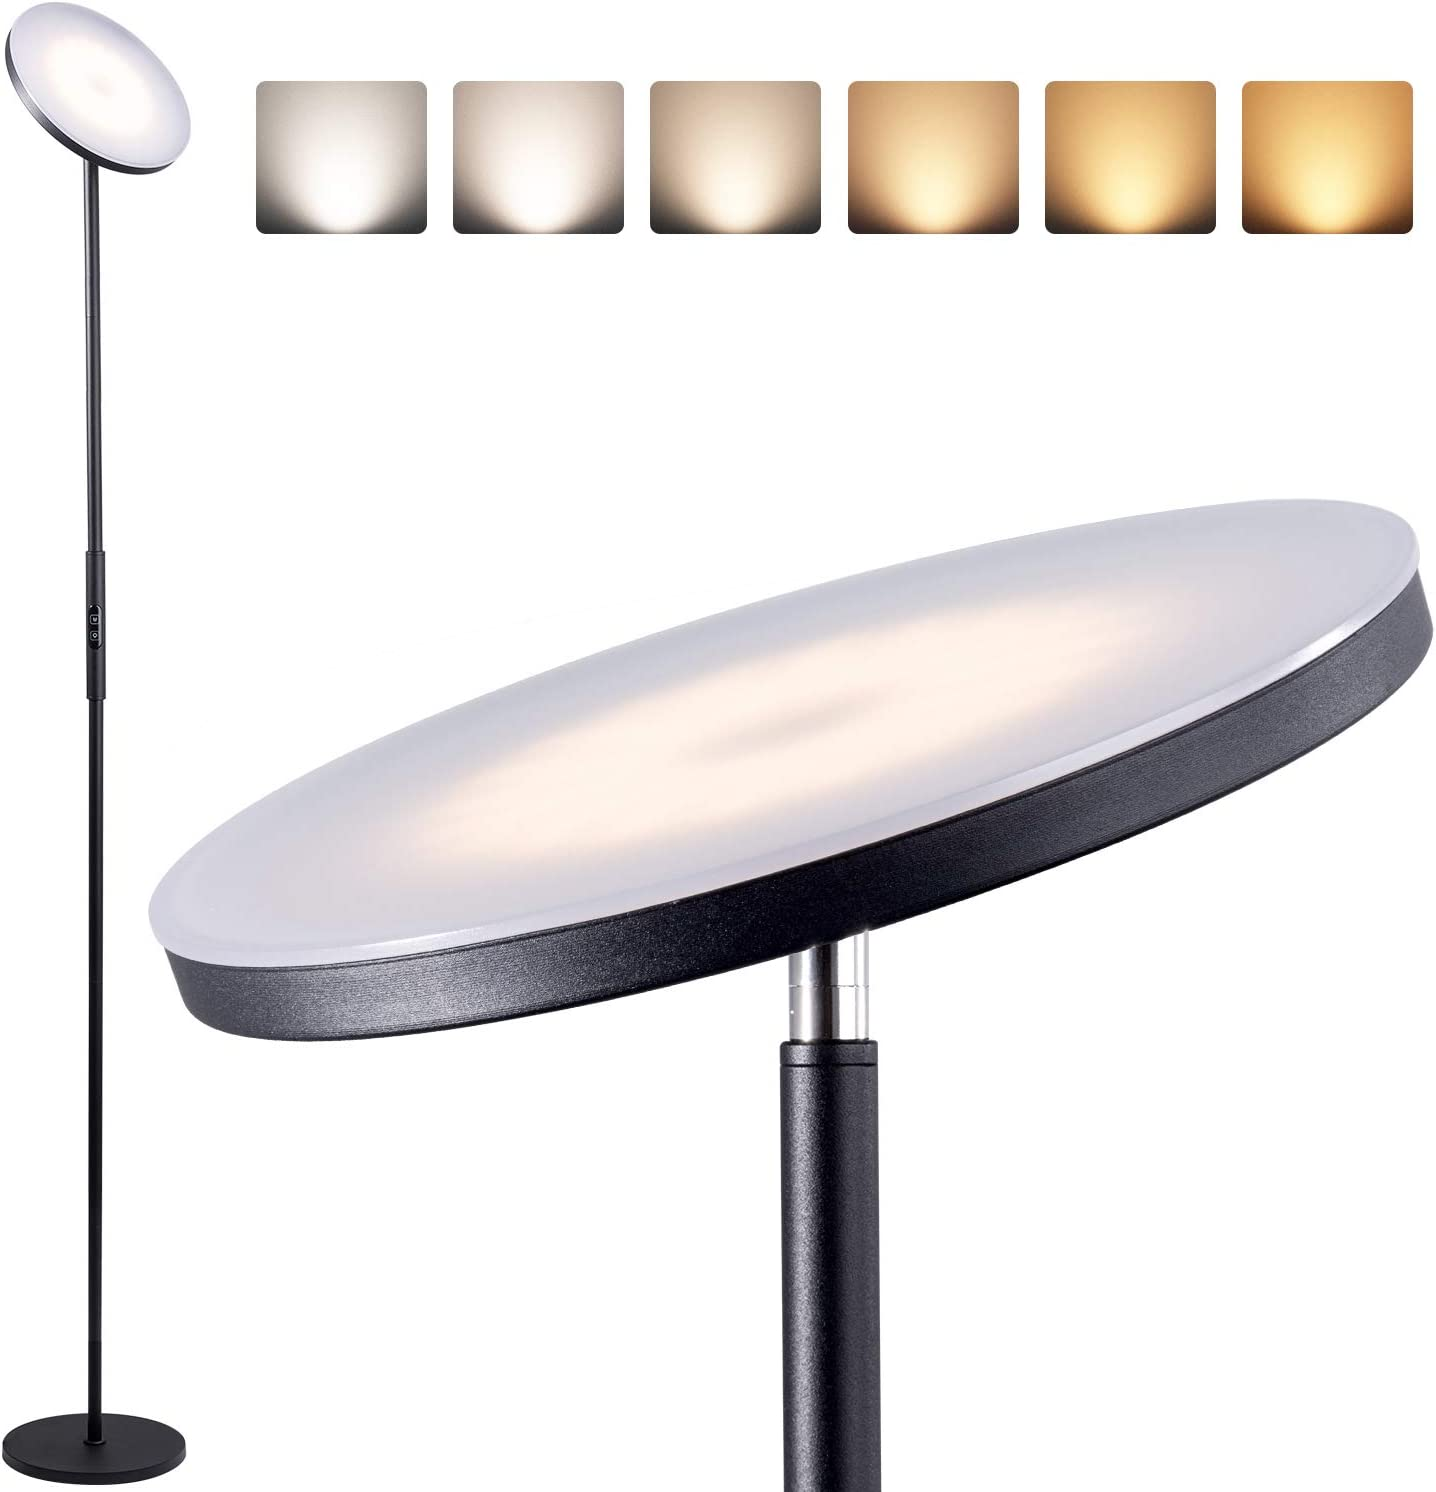 Addlon Floor Lamp, Torchiere 6 Color Temperatures Super Bright Sanding Lamp for Living Room, Bedroom and Office, with Stepless Dimming, Memory Function - Classic Black